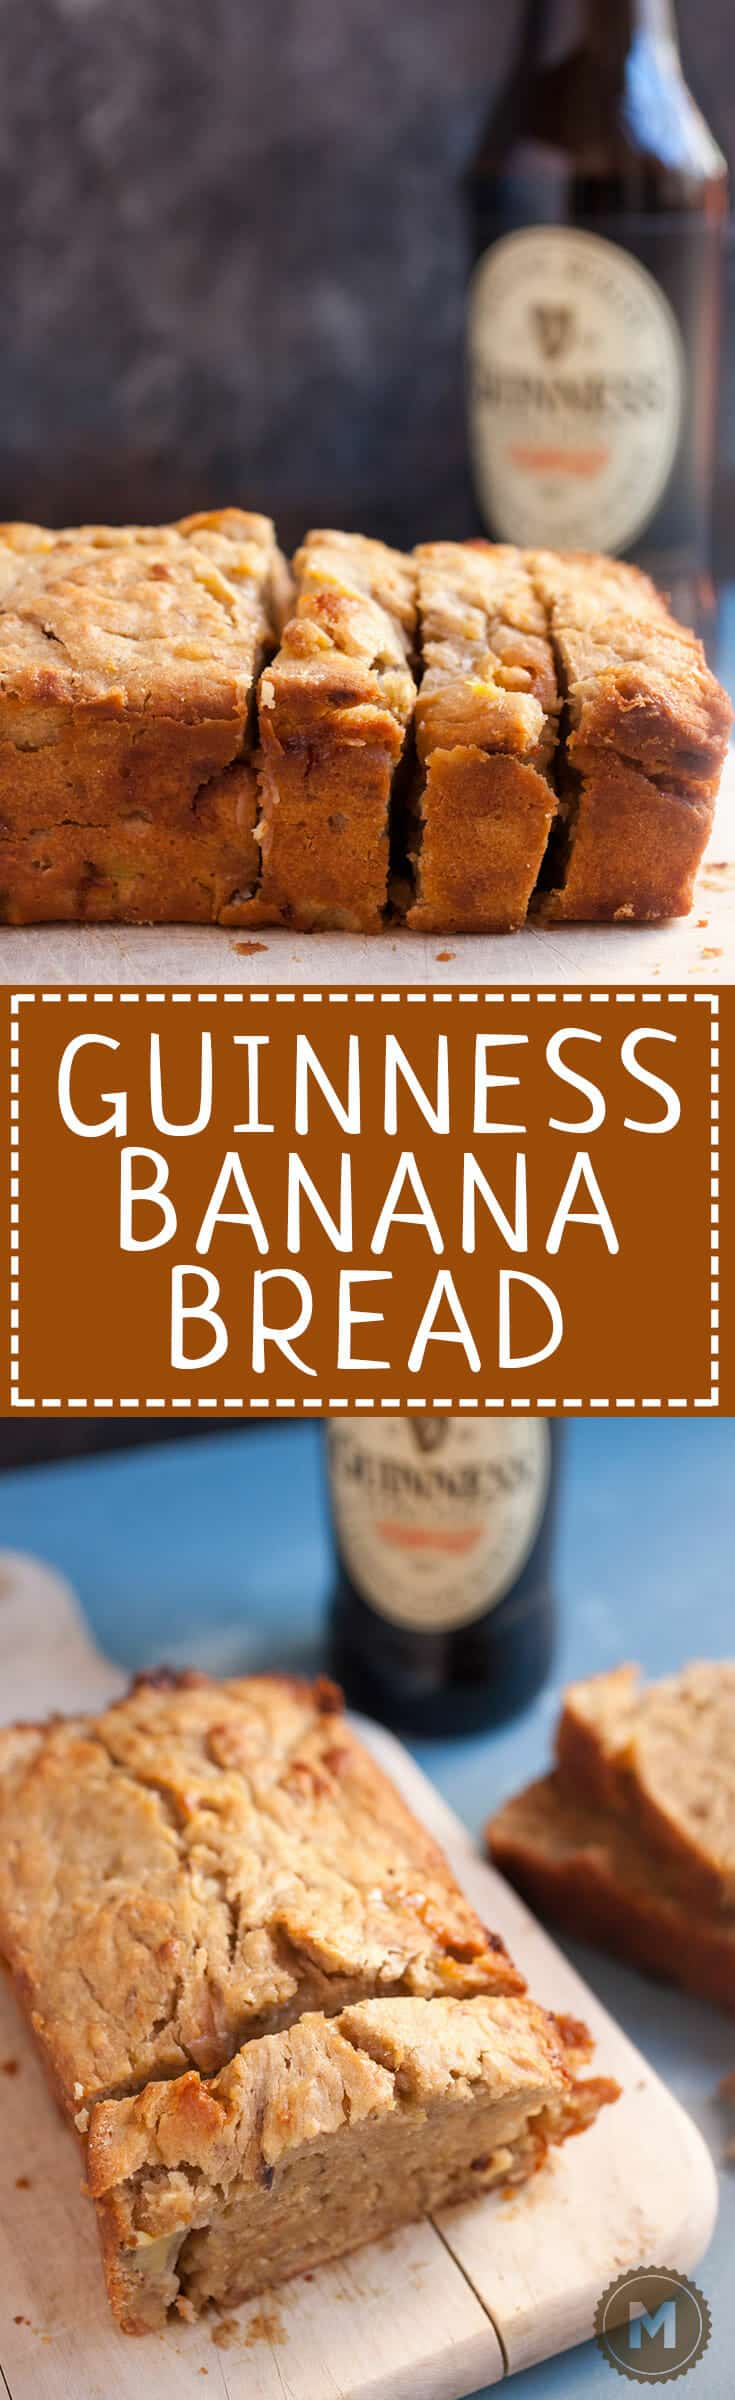 Guinness Banana Beer Bread